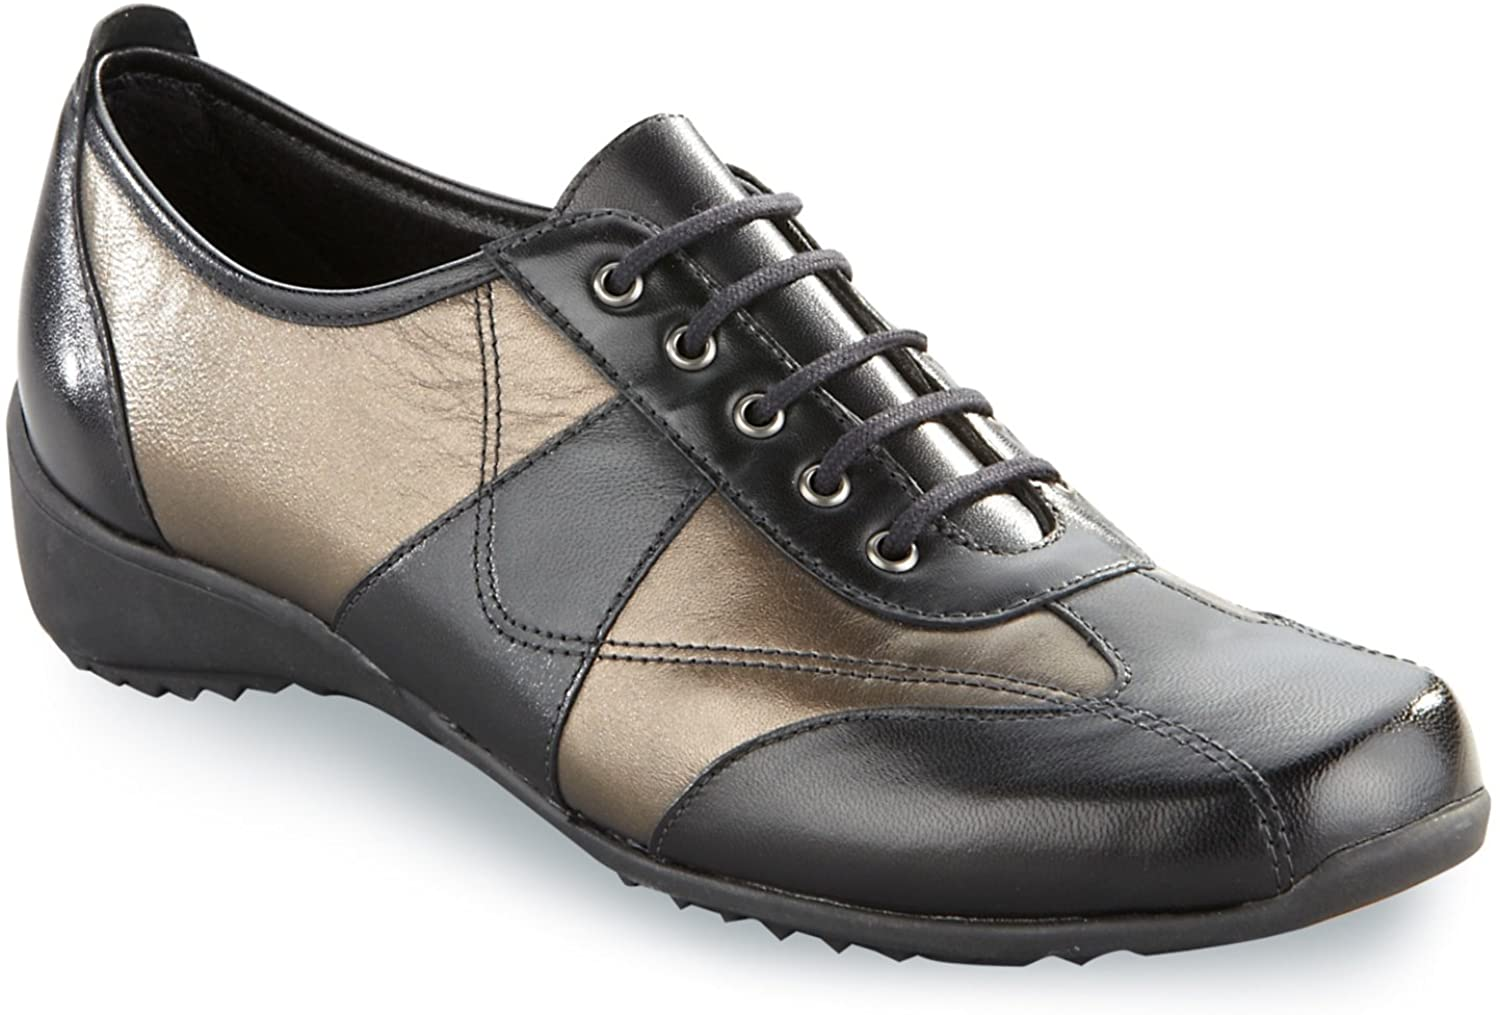 Munro Womens Pace Lace-Up Shoes